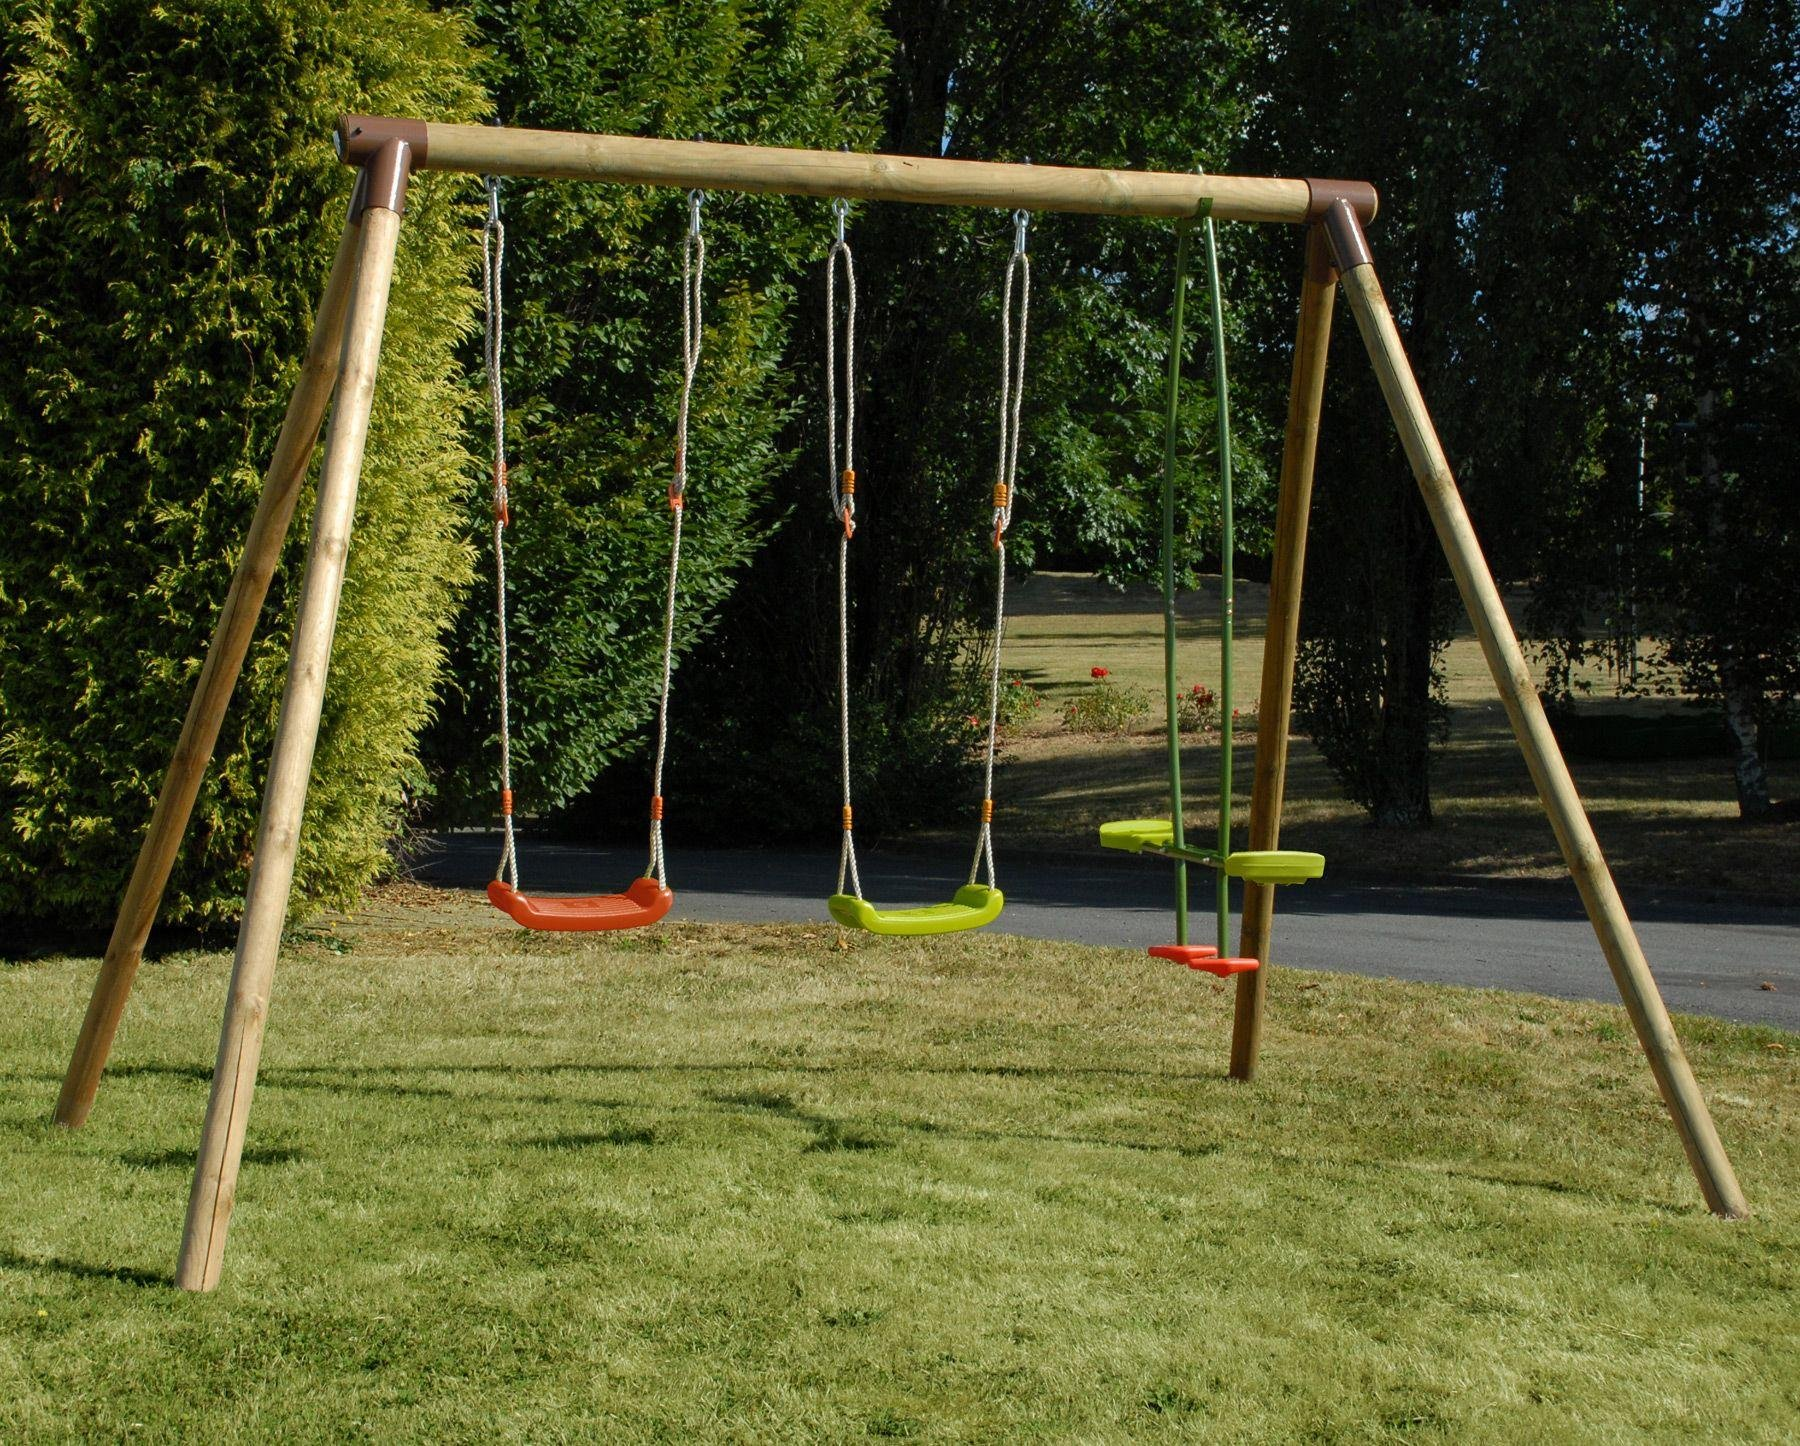 Soulet Pinede Double Swing and See-Saw Swing Attatchment.